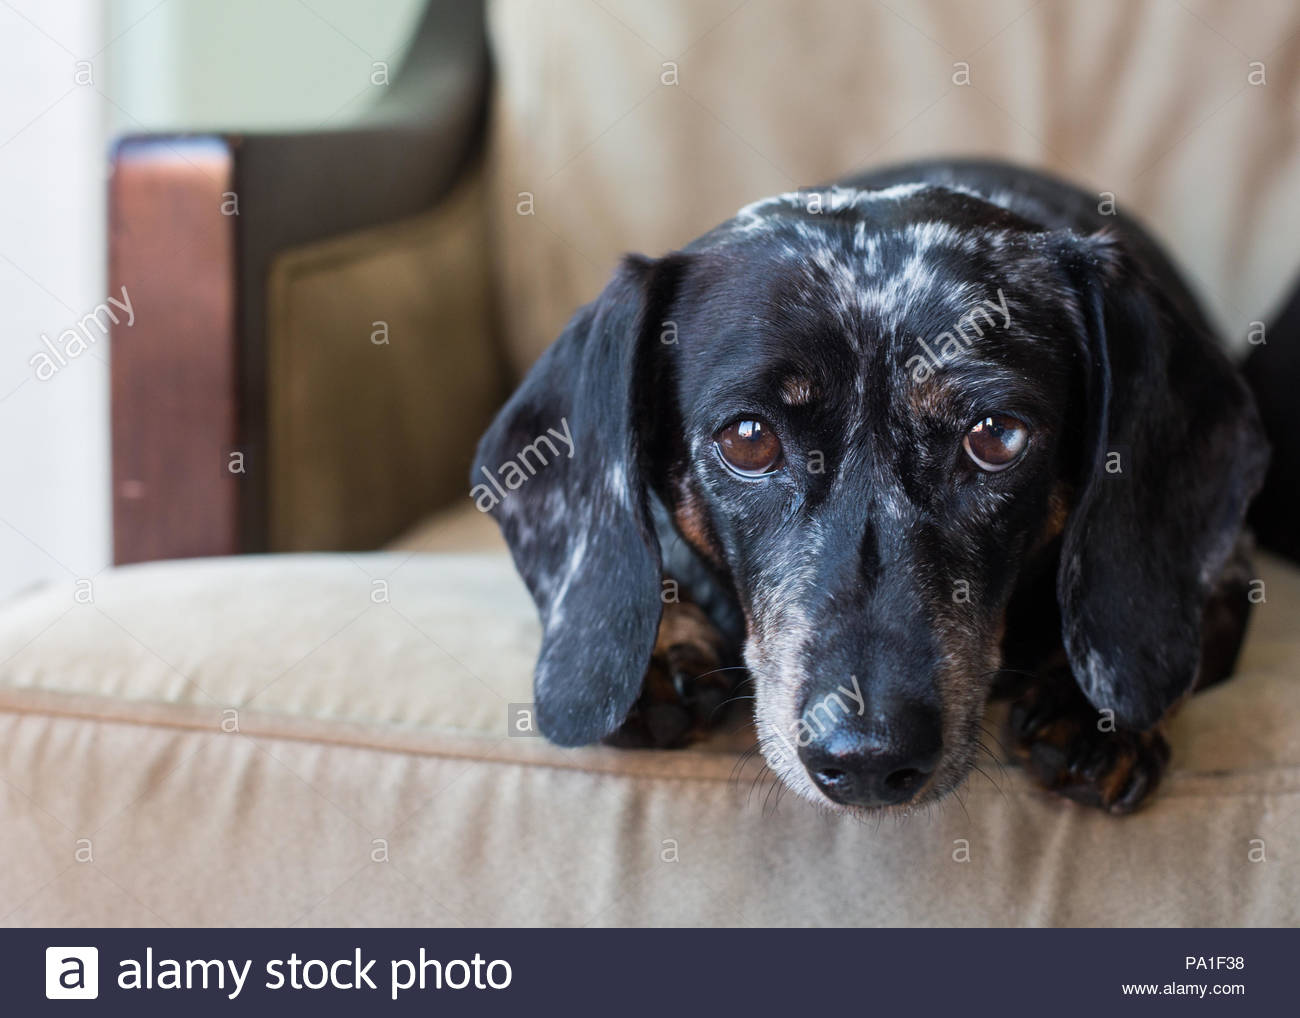 Cute miniature dachshund on couch with plaintive expression looking at camera - Stock Image